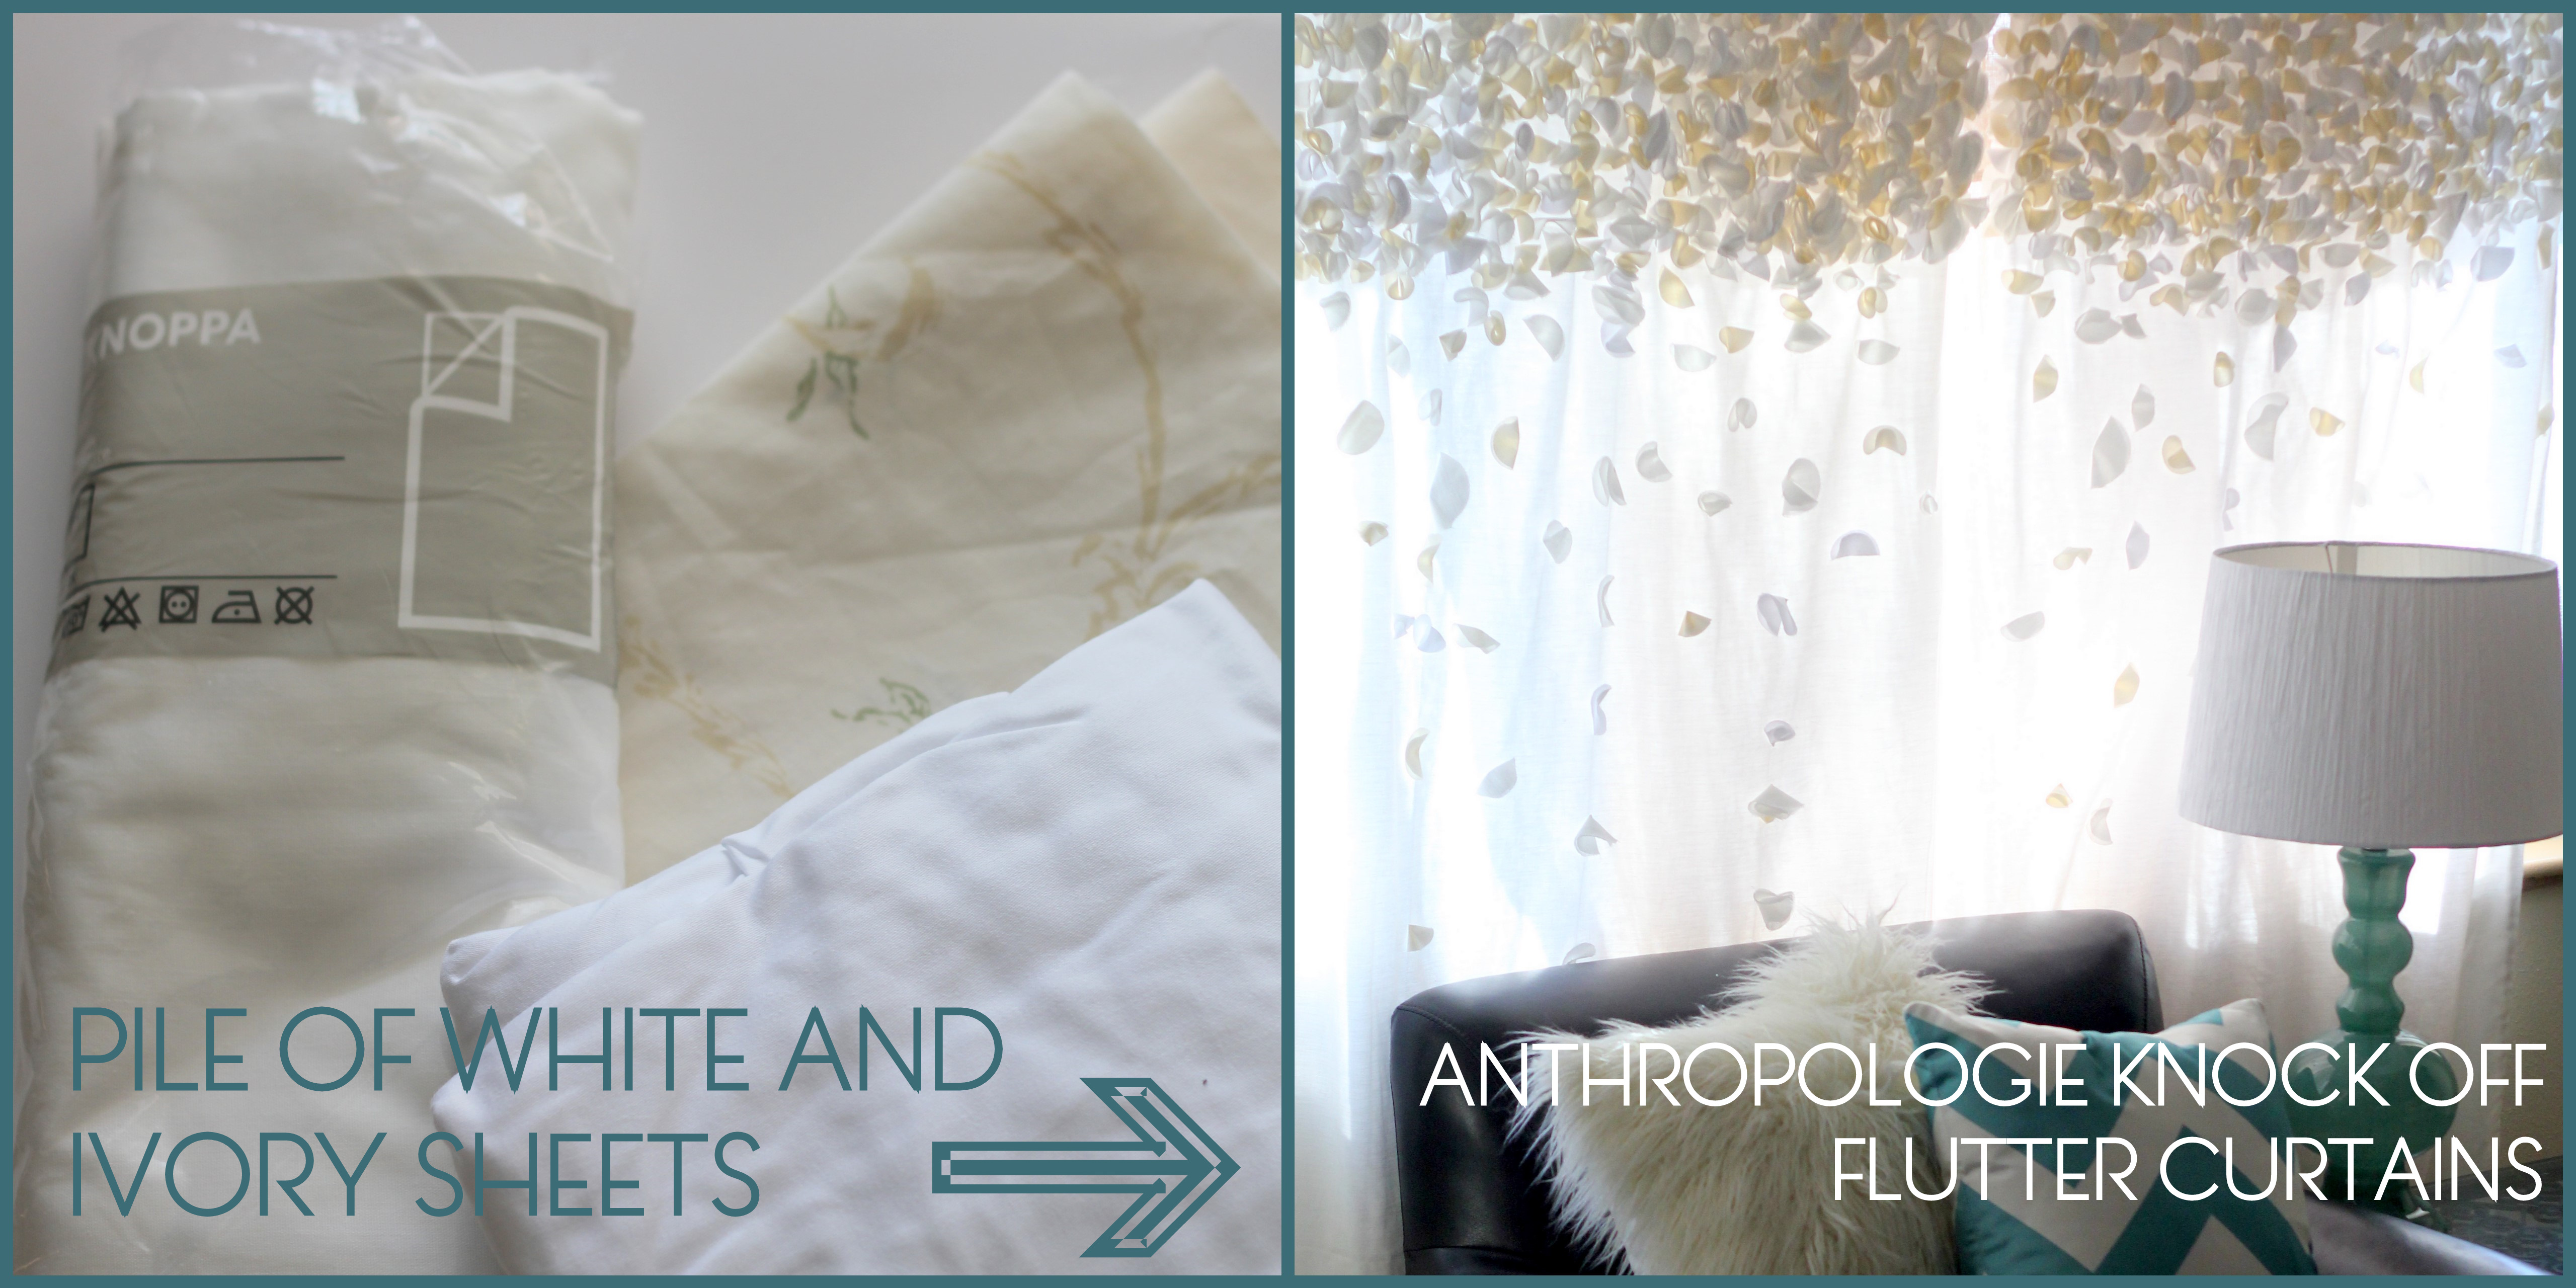 Anthropologie Knock Off Flutter Curtains SYTYCS Week 2